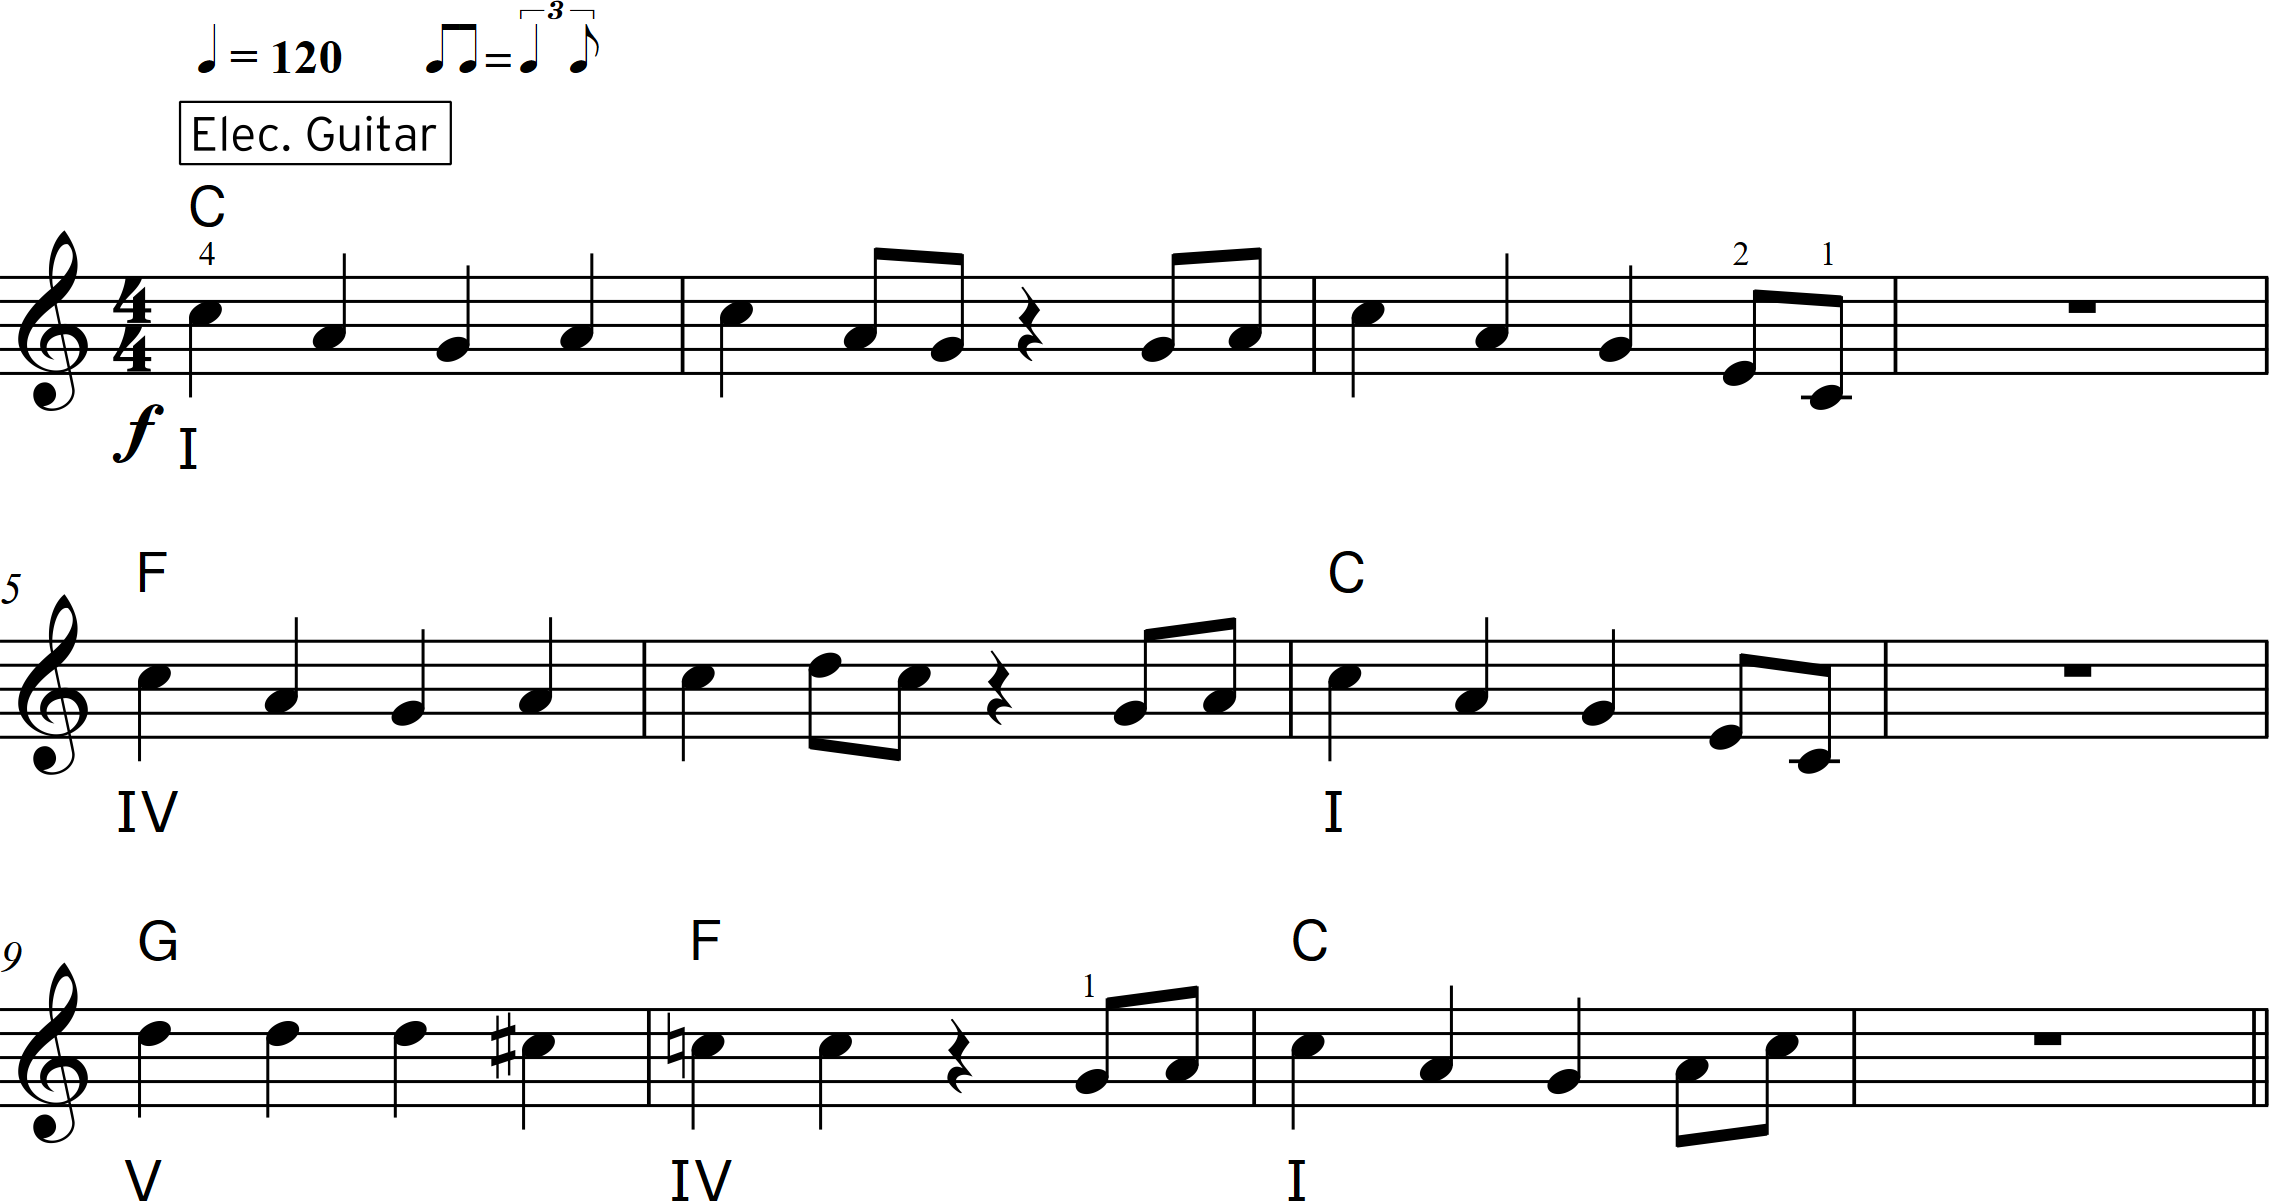 Rock to the Roll bars 1-12 (with roman numerals) - Fig_8